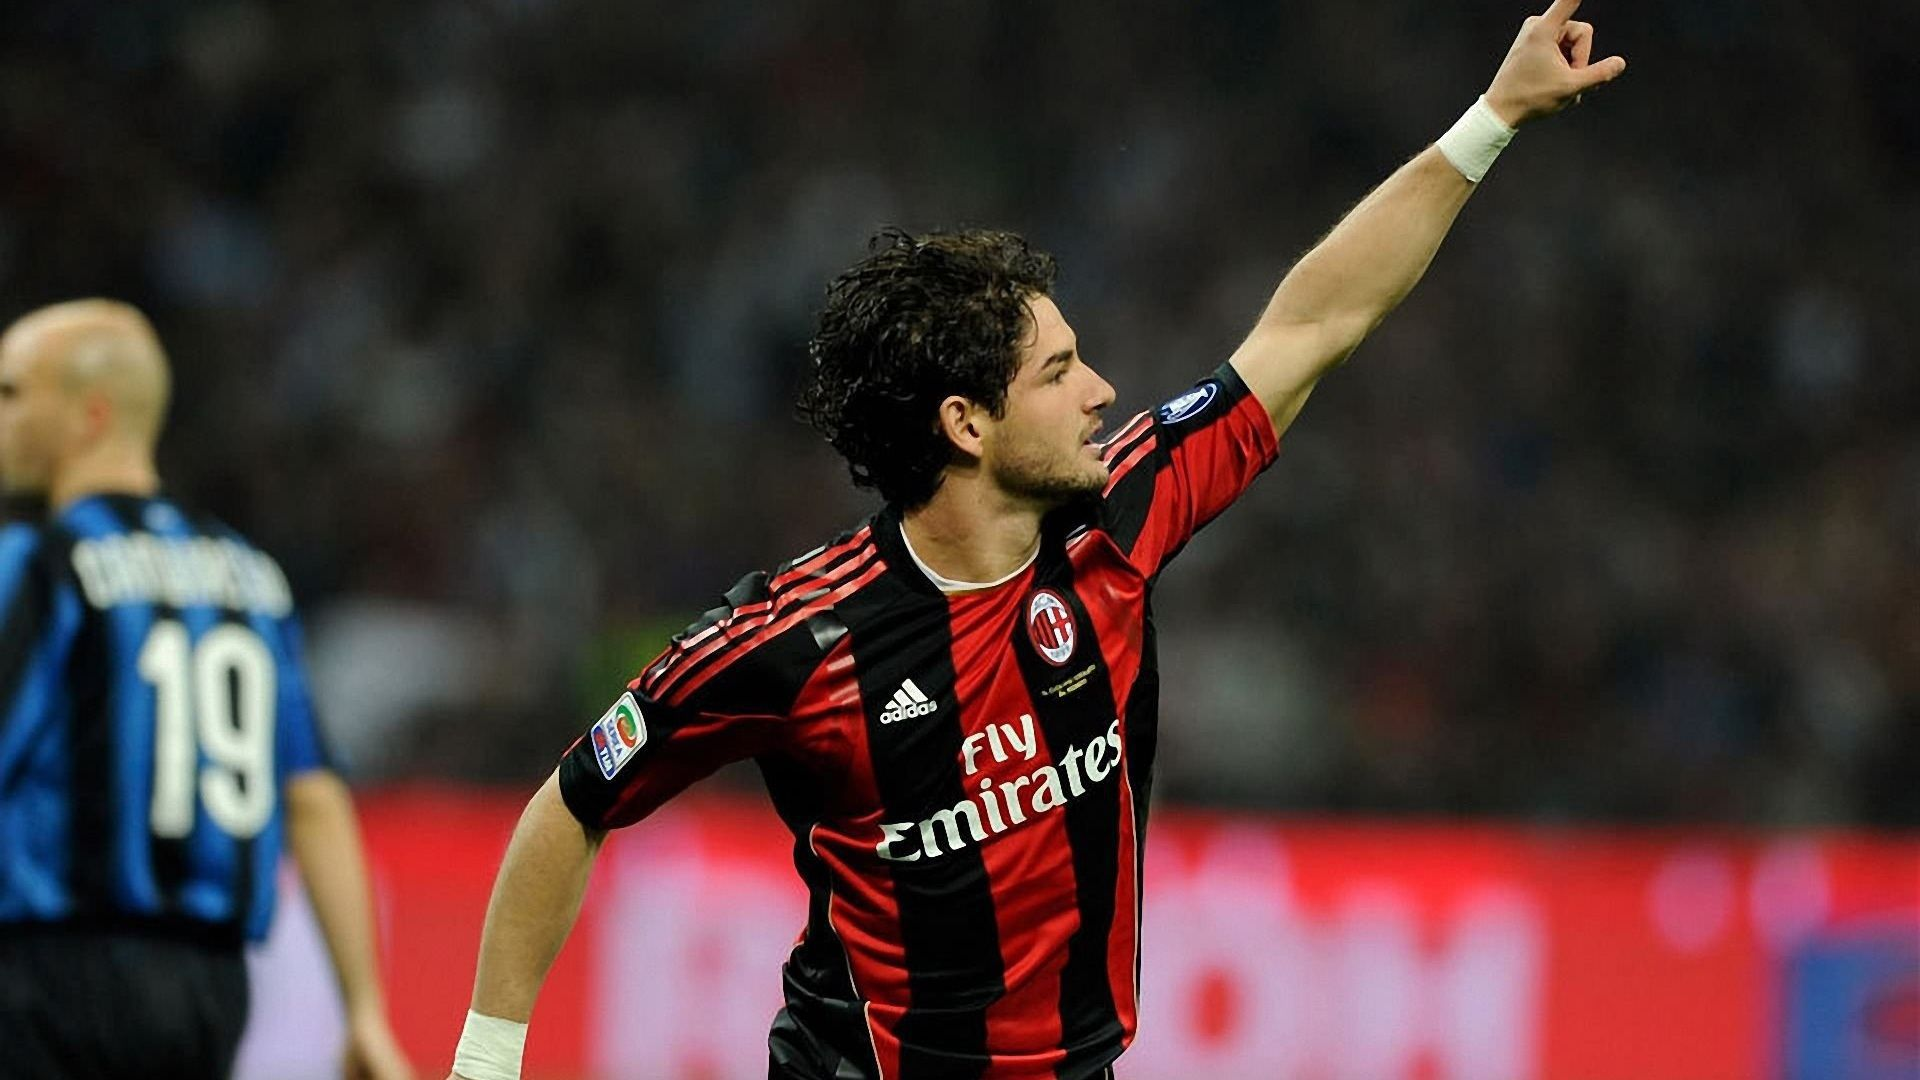 Alexandre Pato High Definition Wallpapers